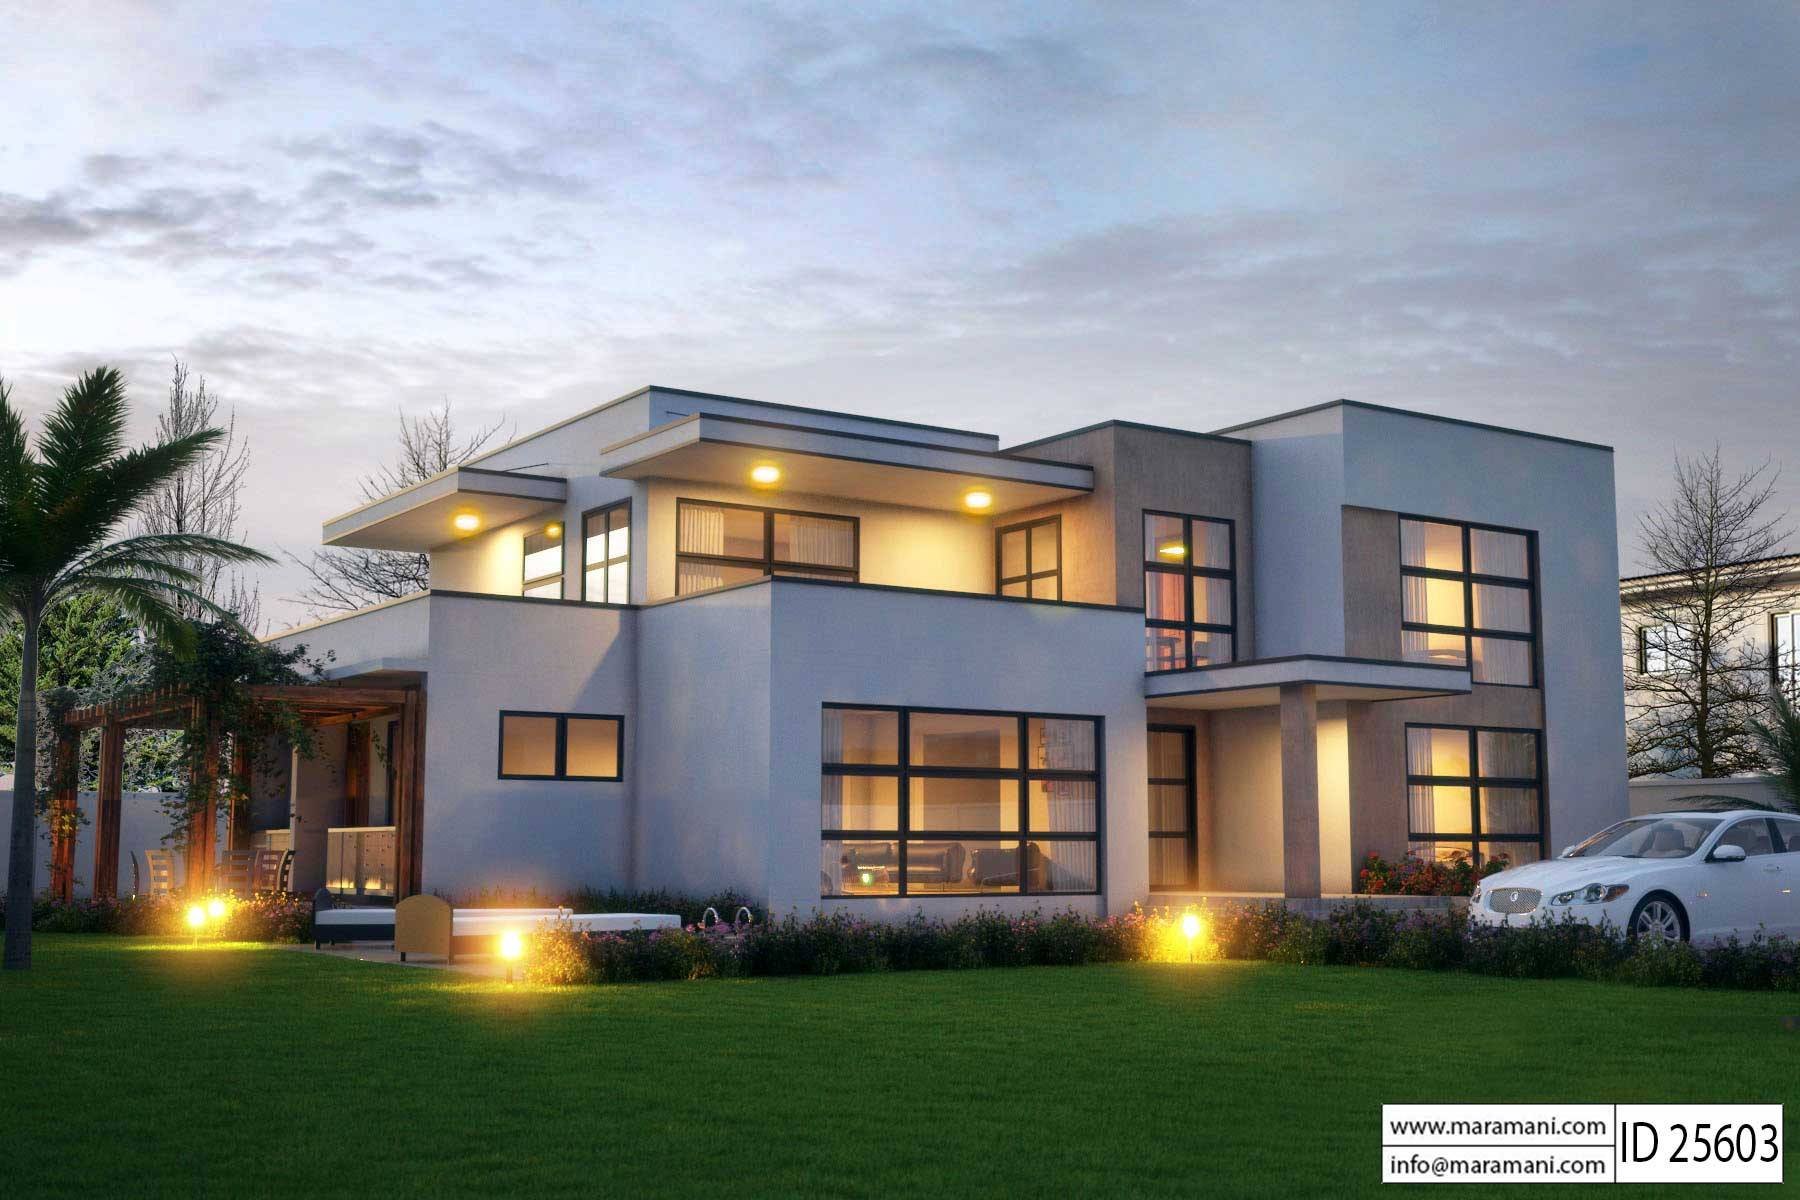 Modern 5 bedroom house design id 25603 floor plans by for House by design